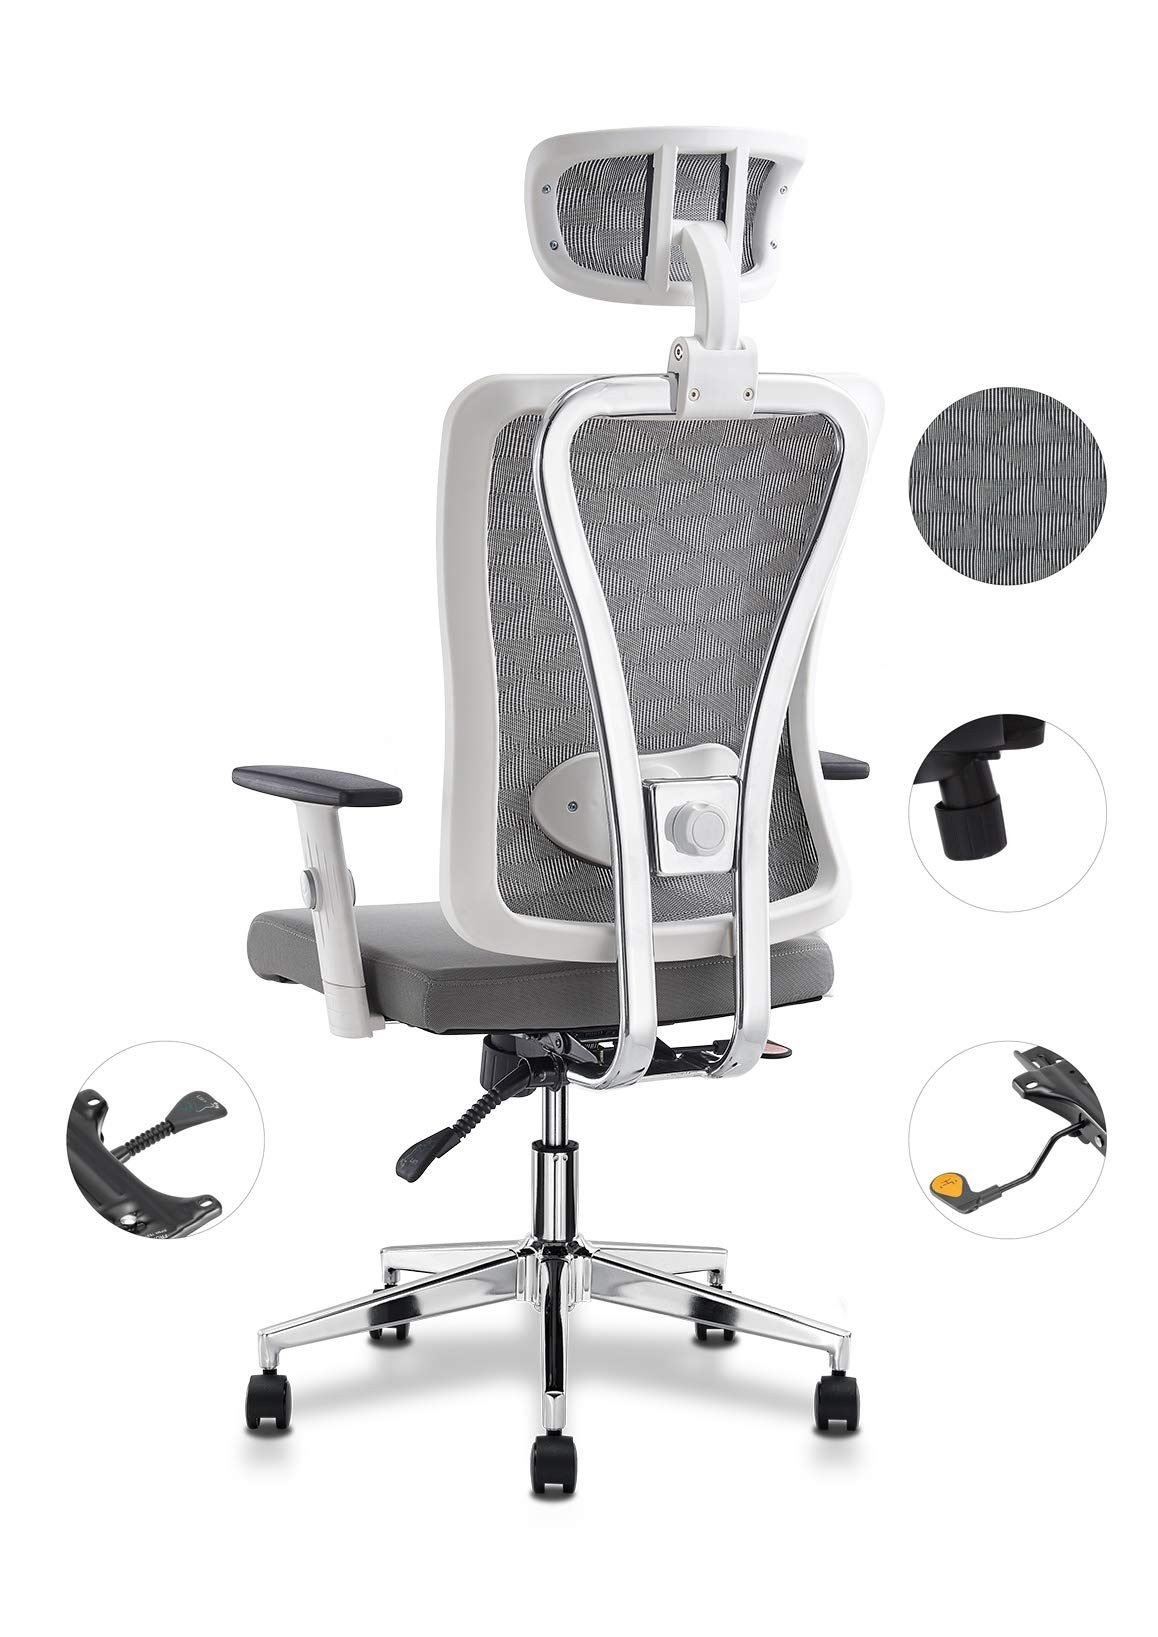 Cedric White Ergonomic Adjustable Office Chair with